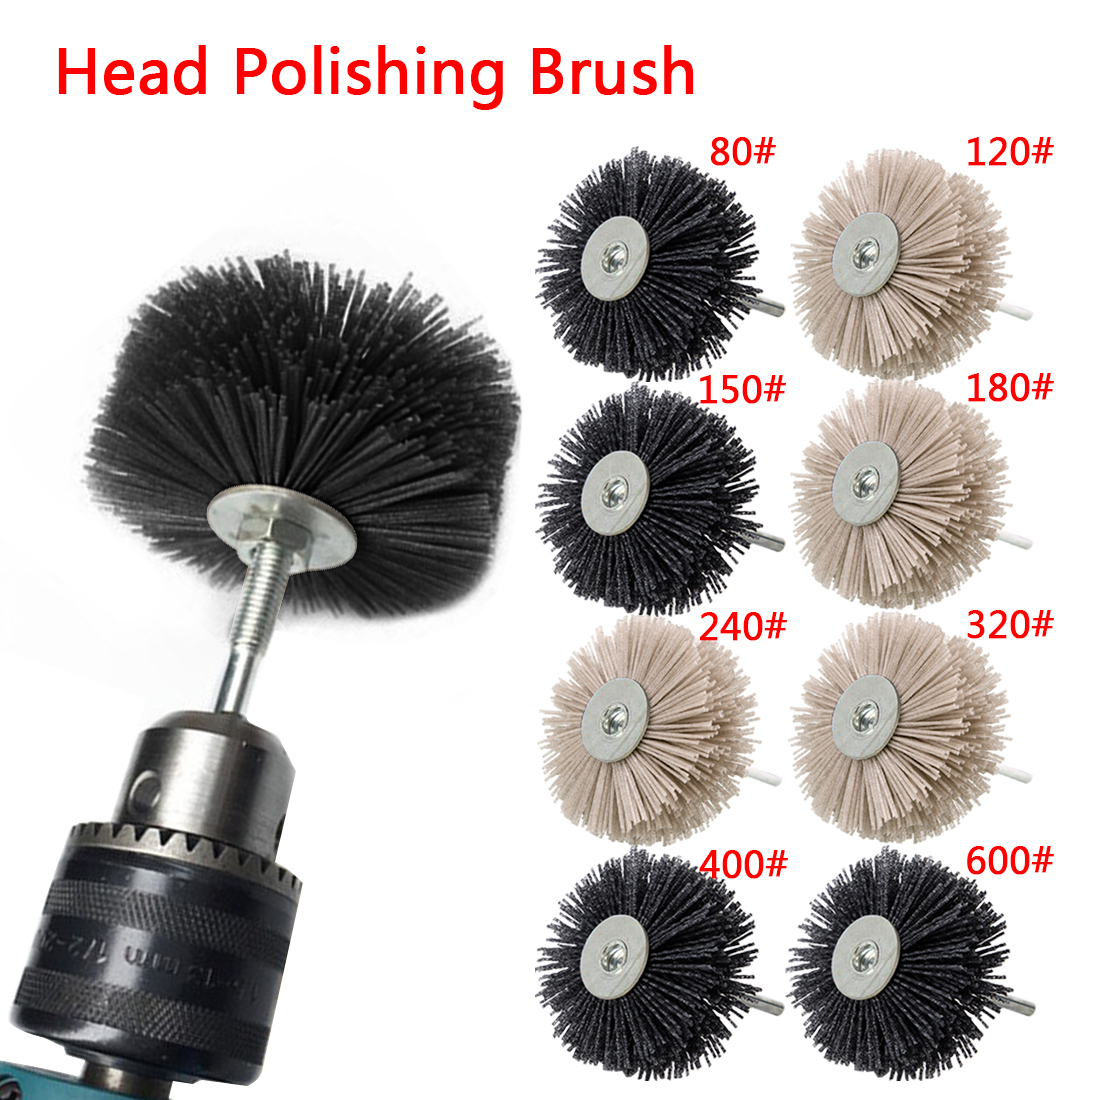 OD 80mm Drill Flower Head Abrasive Wire Grinding Wheel Nylon Bristle Polishing Brush For Wood Furniture Mahogany Finish